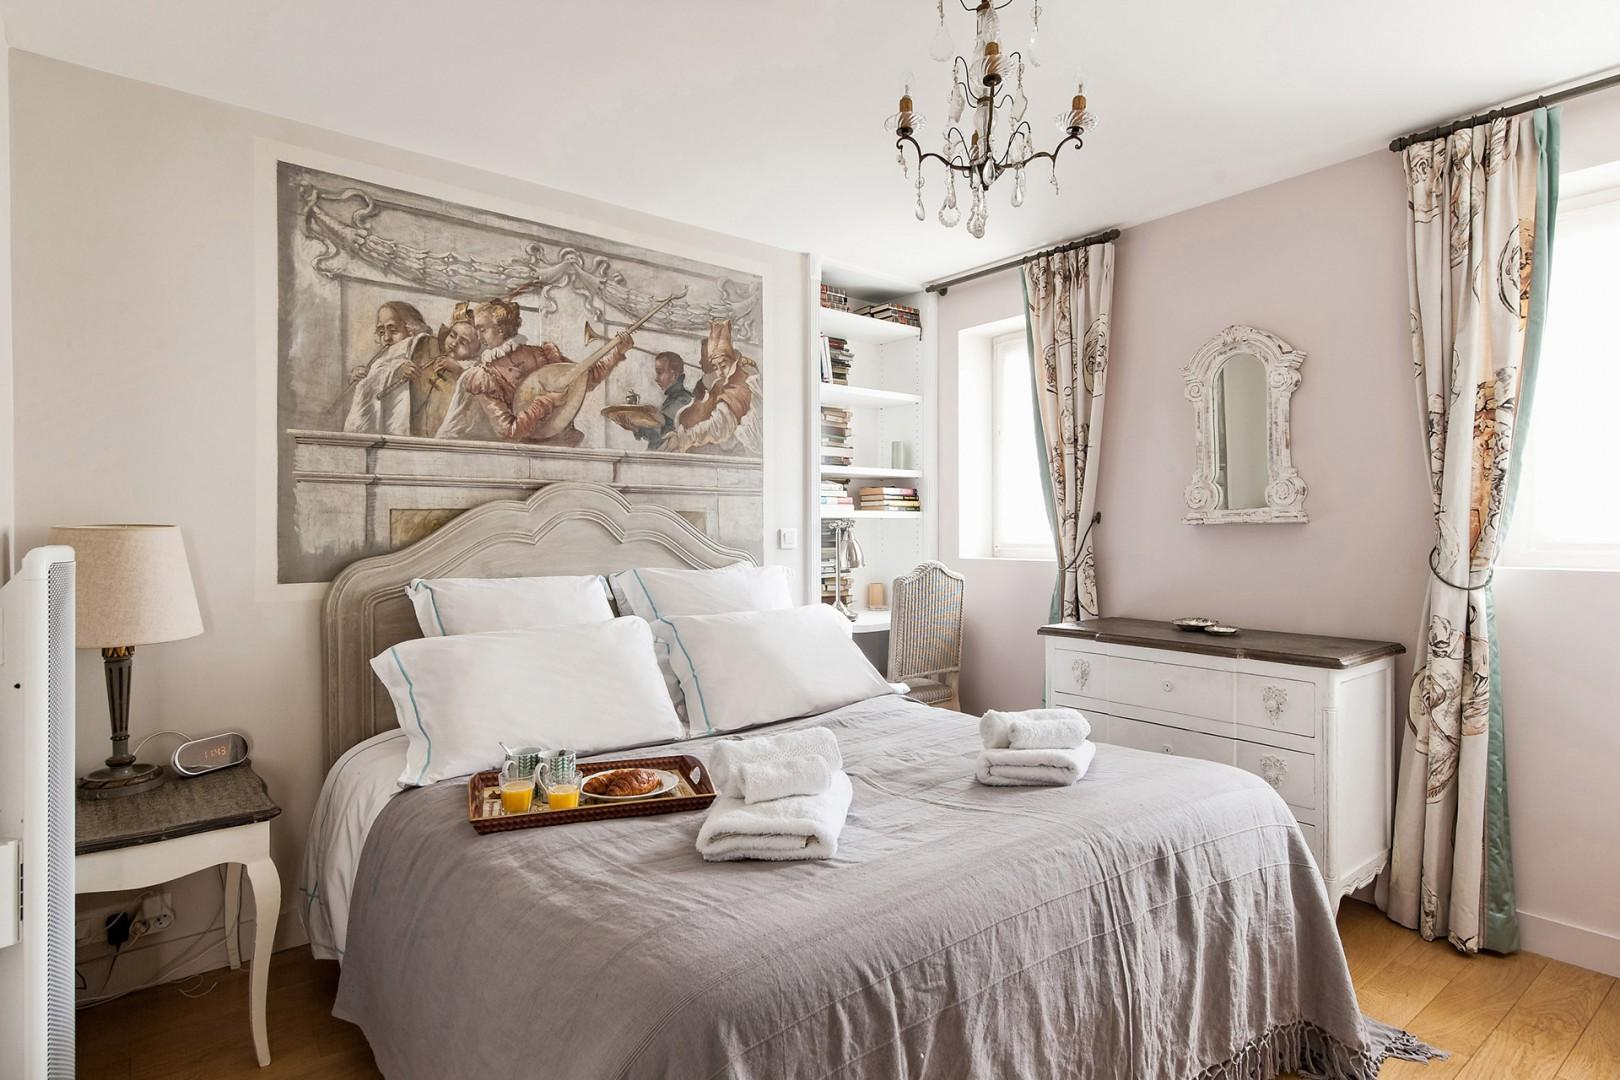 The sophisticated bedroom 1 features a large and comfortable bed.